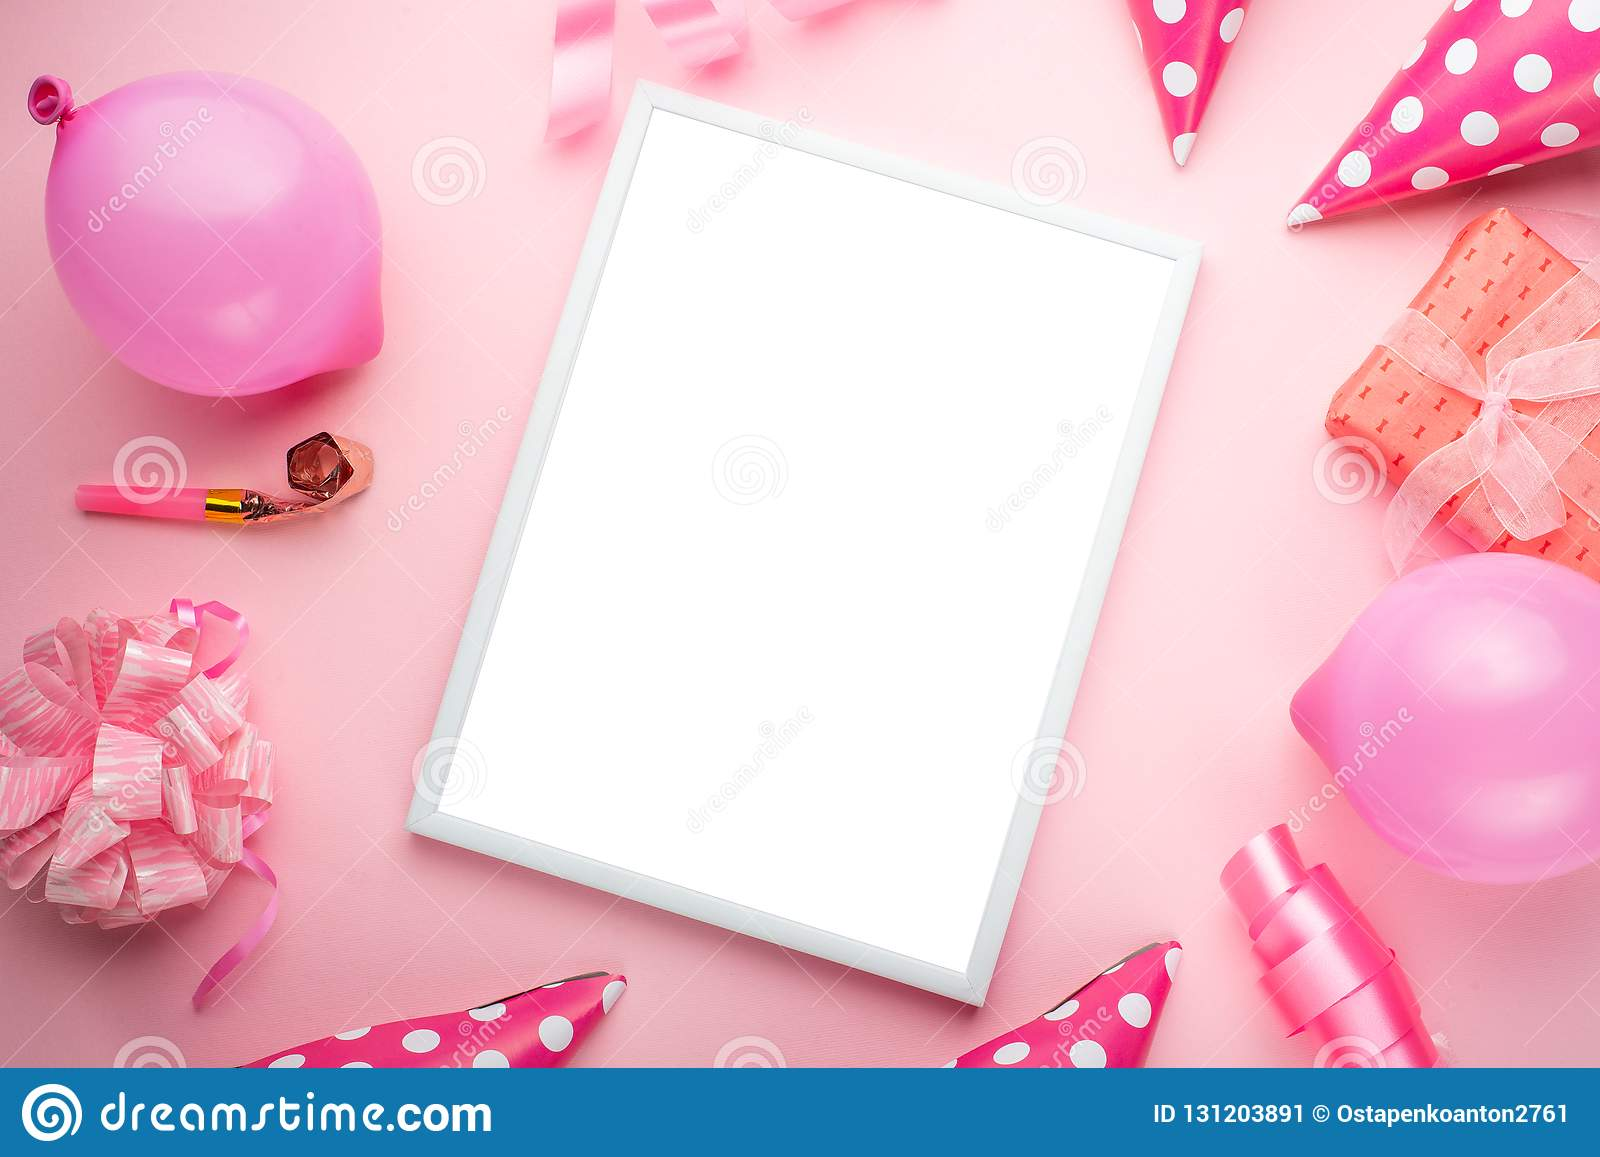 Accessories for girls on a pink background. Invitation, birthday, girlhood party, baby shower concept, celebration. With frame for